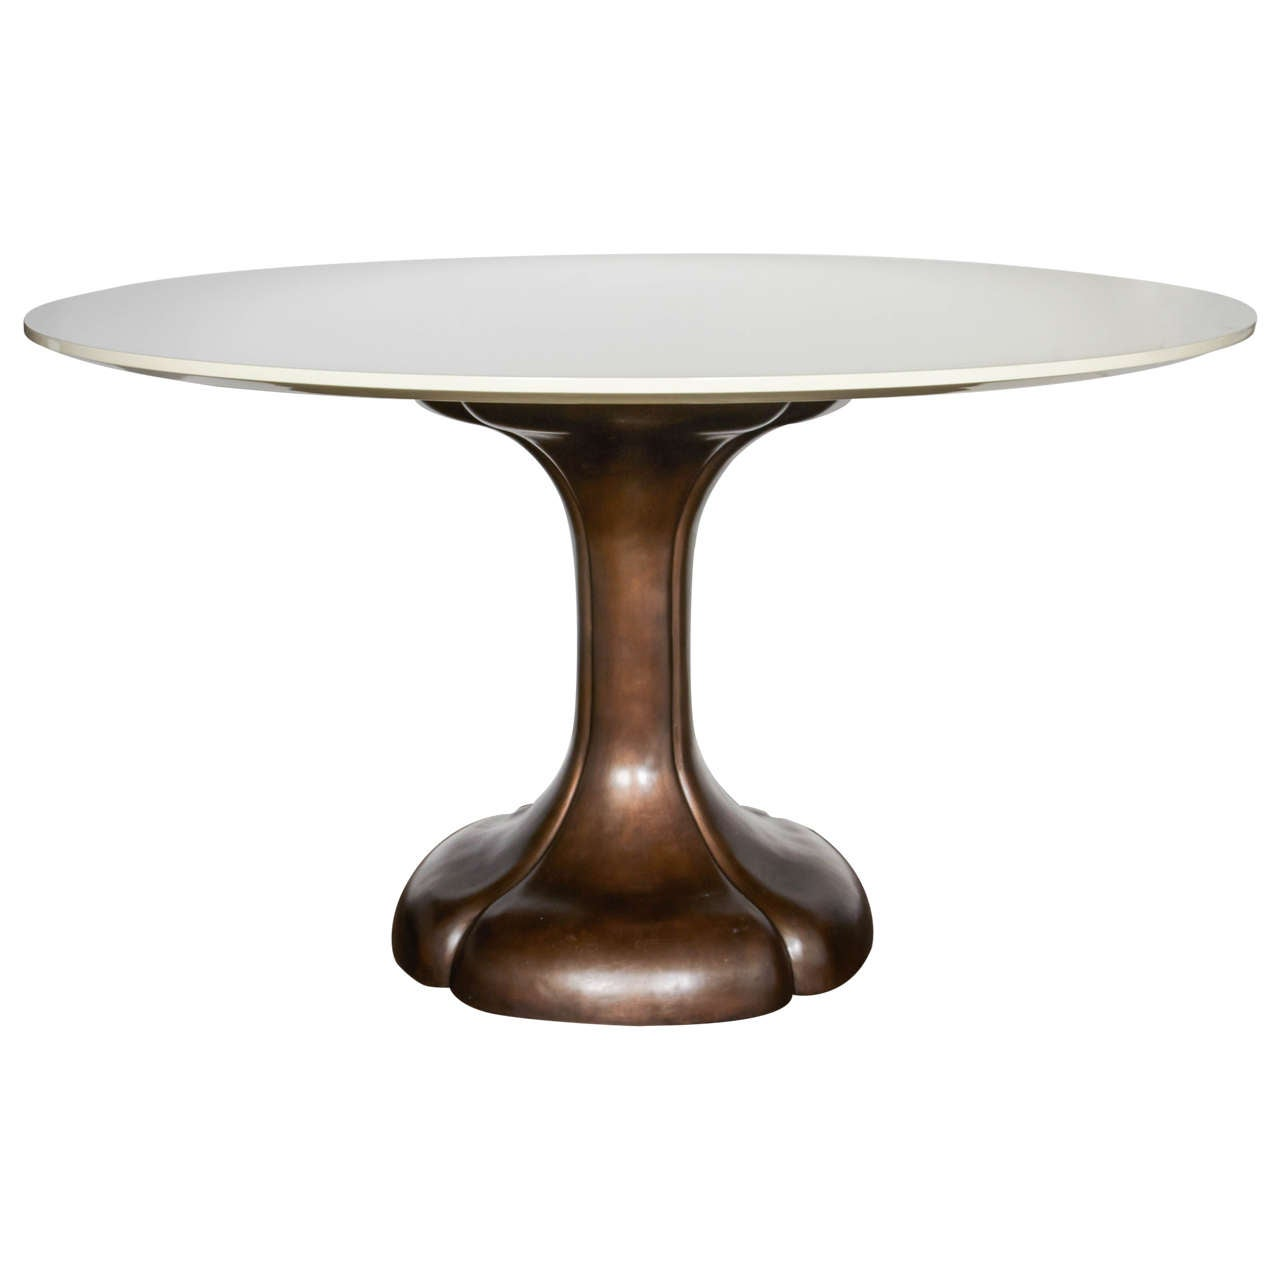 Art Nouveau Style Round Dining Table with Bronze Pedestal  : X from www.1stdibs.com size 1280 x 1280 jpeg 35kB